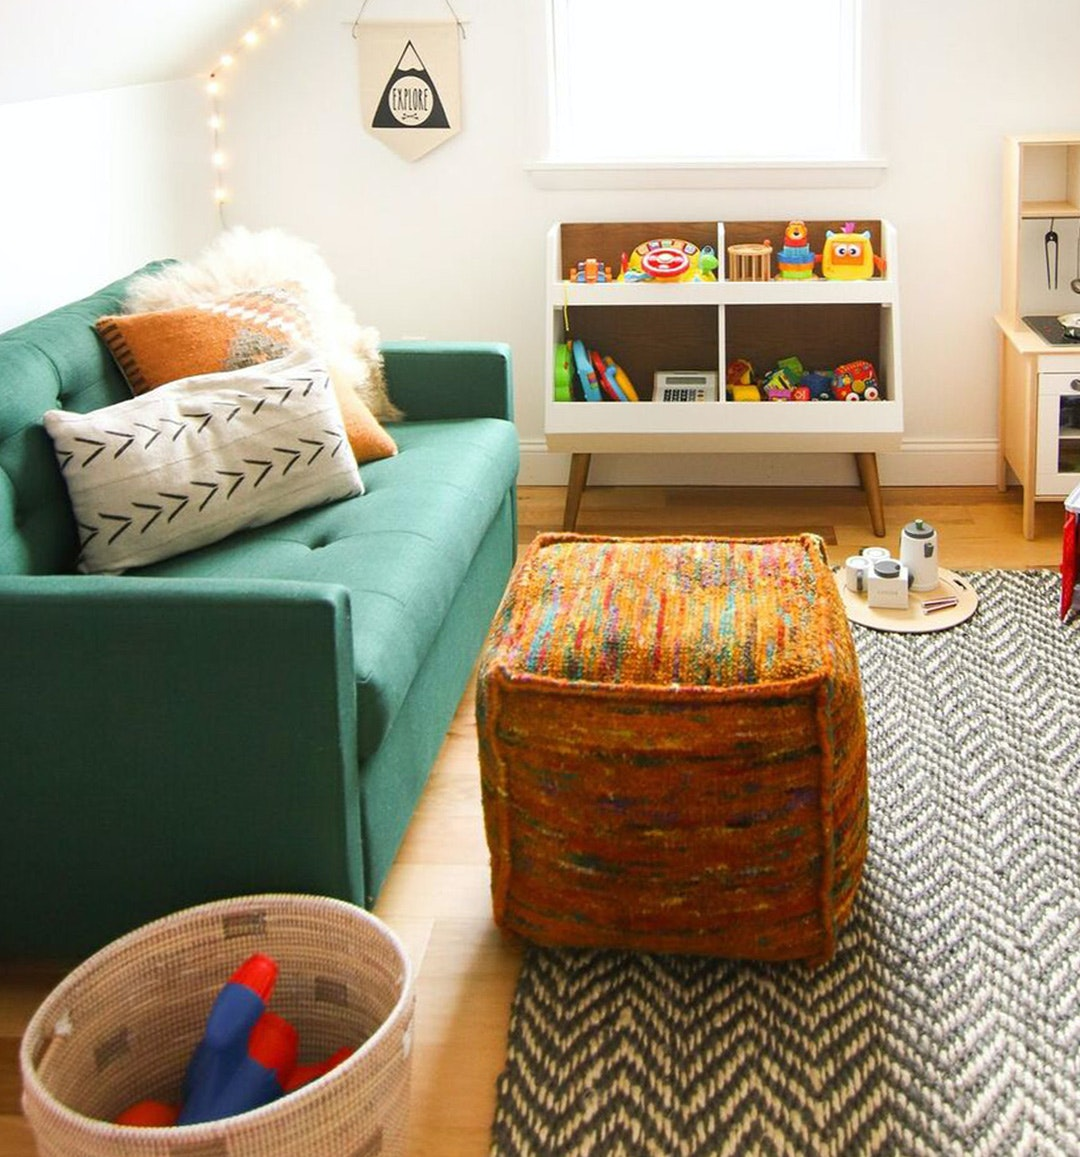 Before & After - The Perfect Playroom